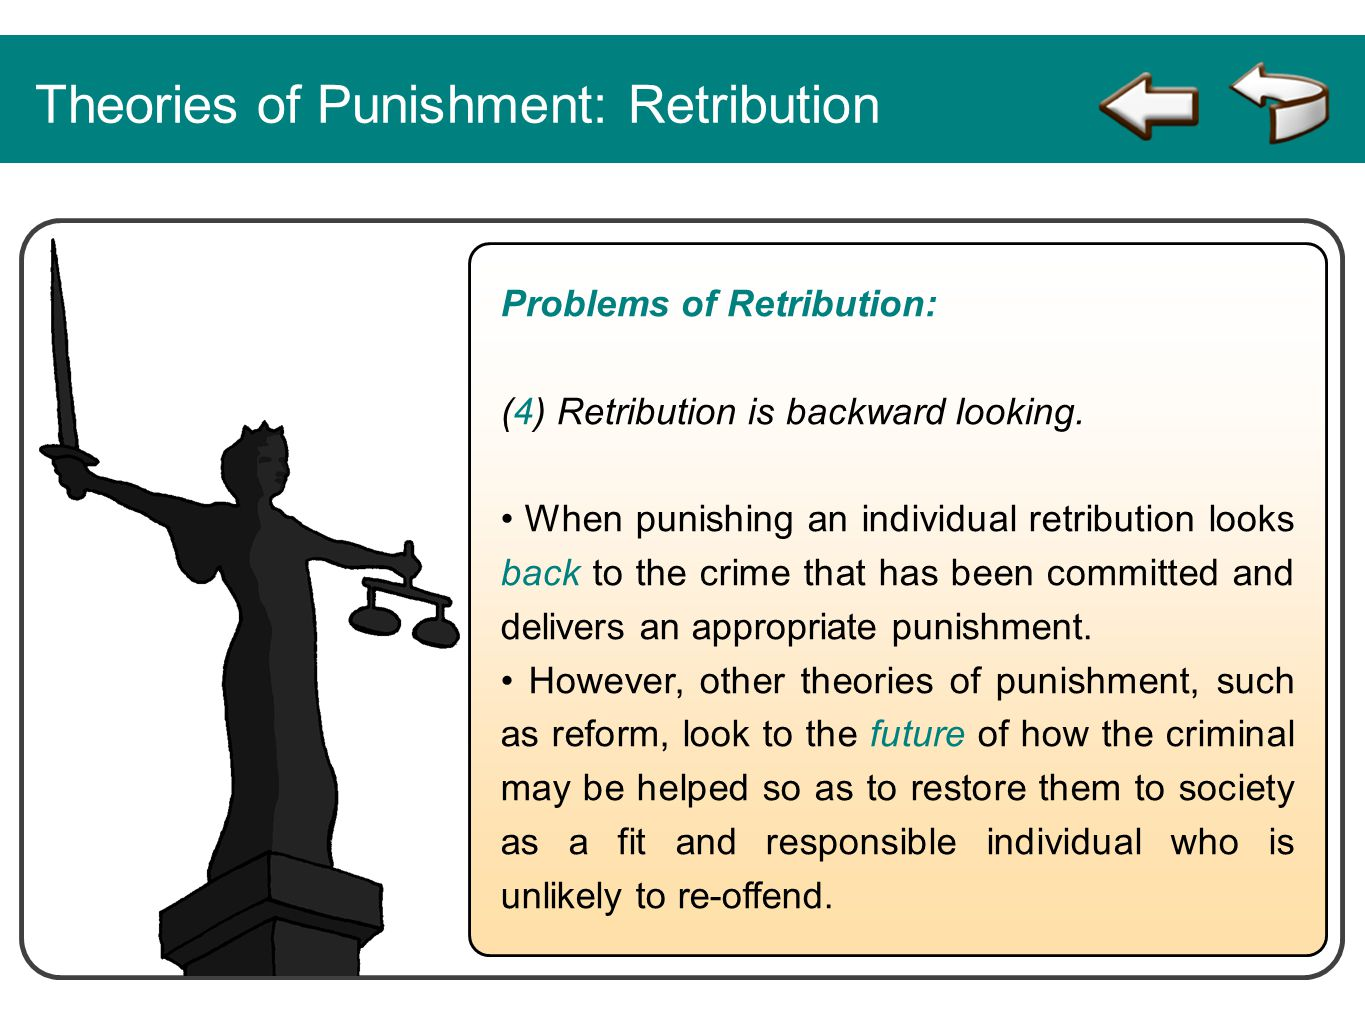 Theories of Punishment: Retribution Problems of Retribution: (4) Retribution is backward looking. When punishing an individual retribution looks back